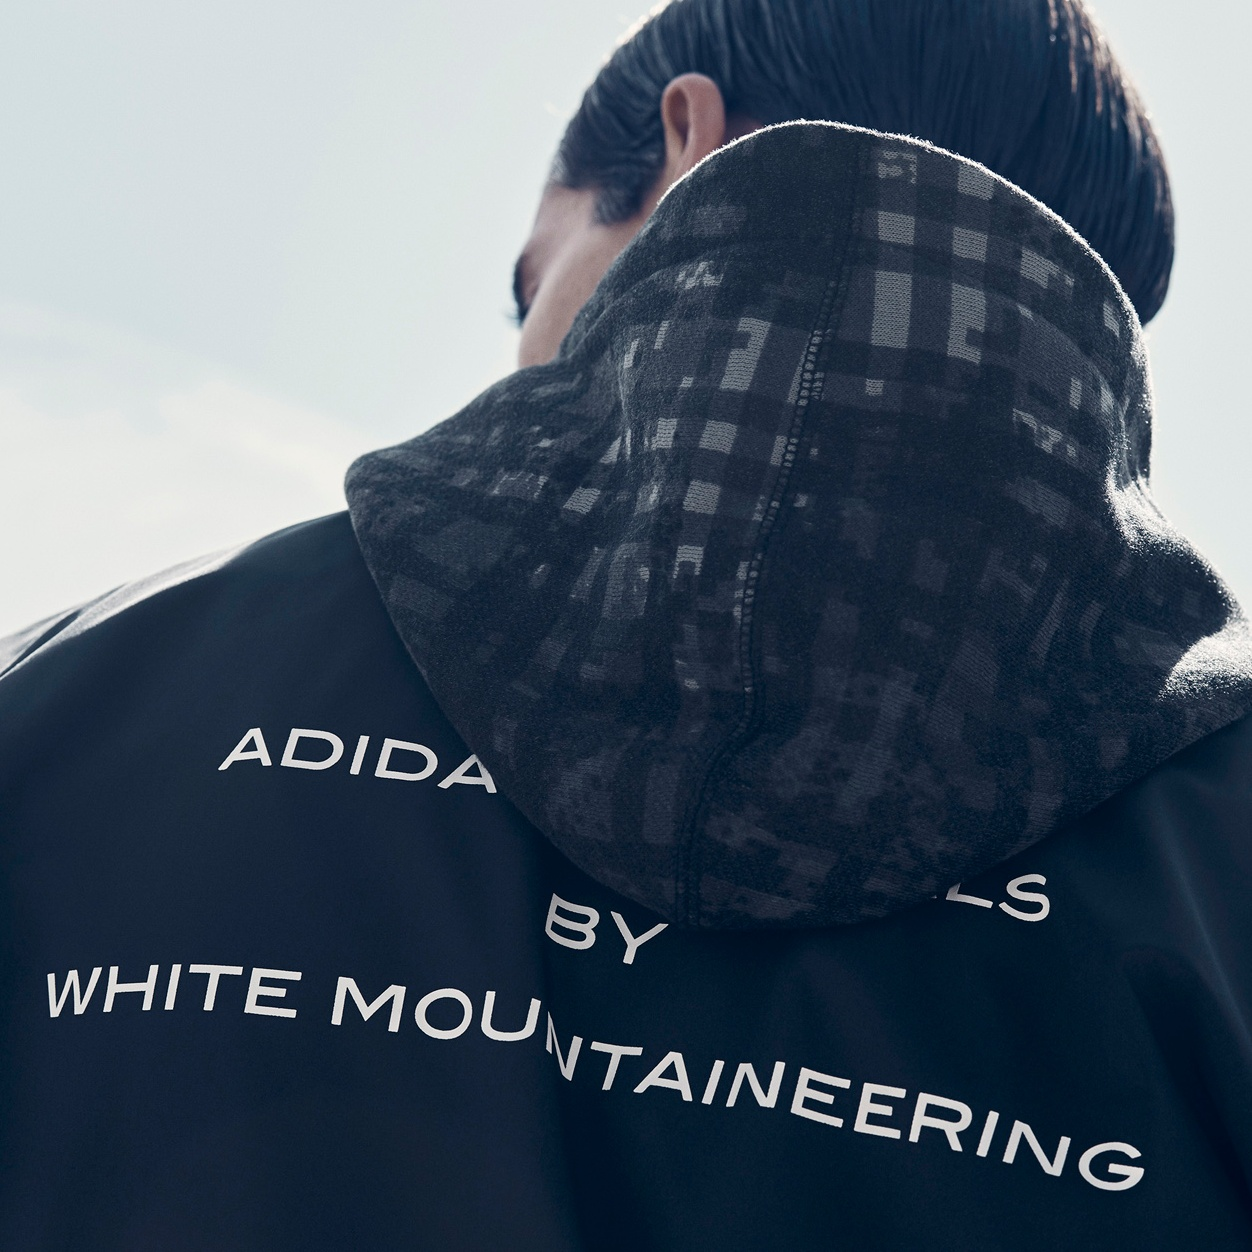 h20407_key_model_white_mountaineering_04_rgb-cropped